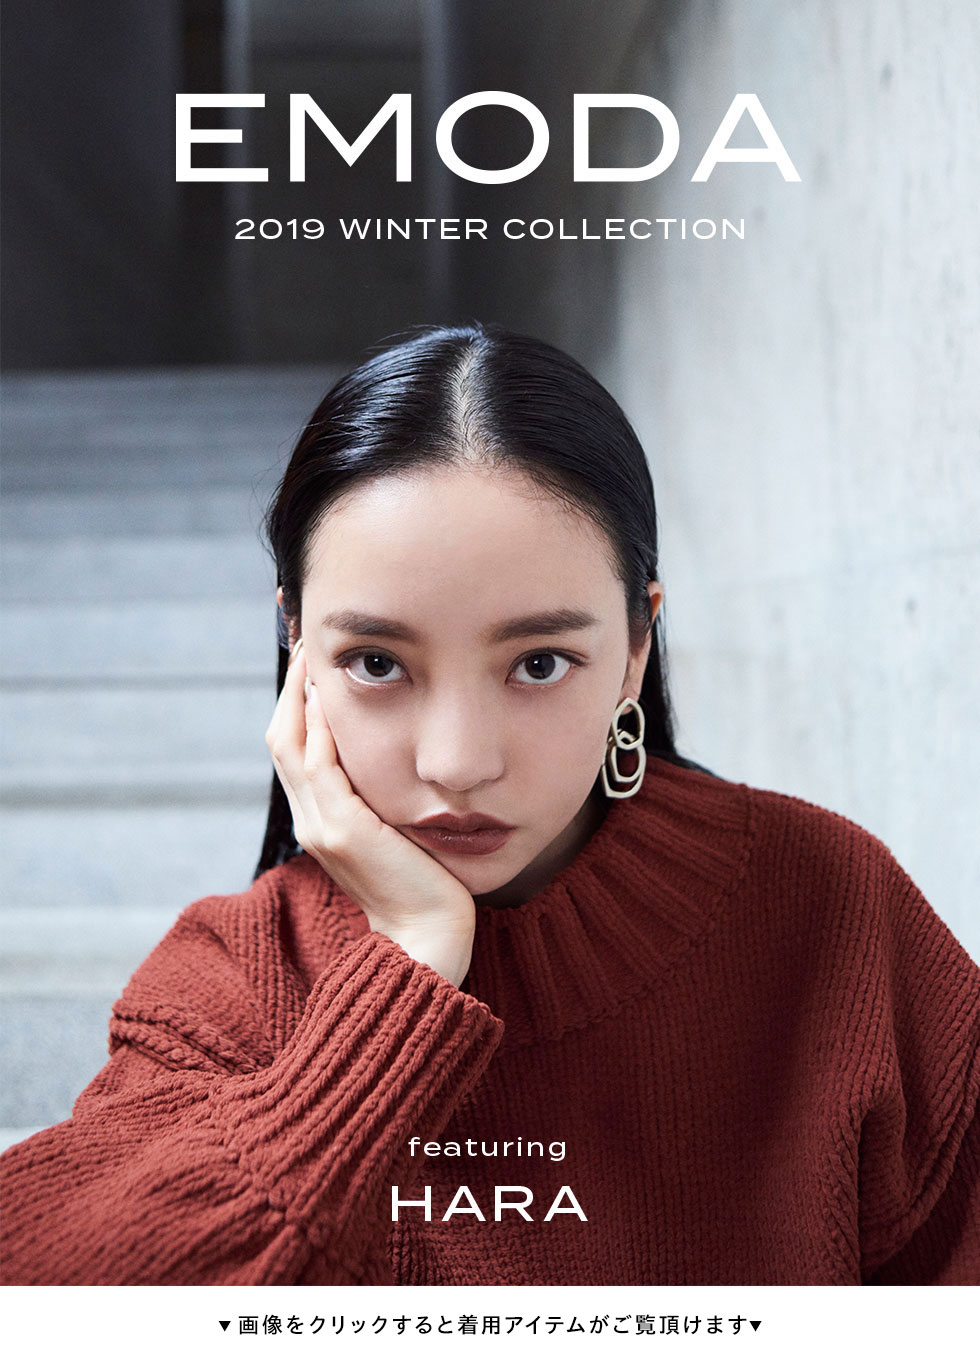 2019 WINTER COLLECTION featuring HARA Image No.1